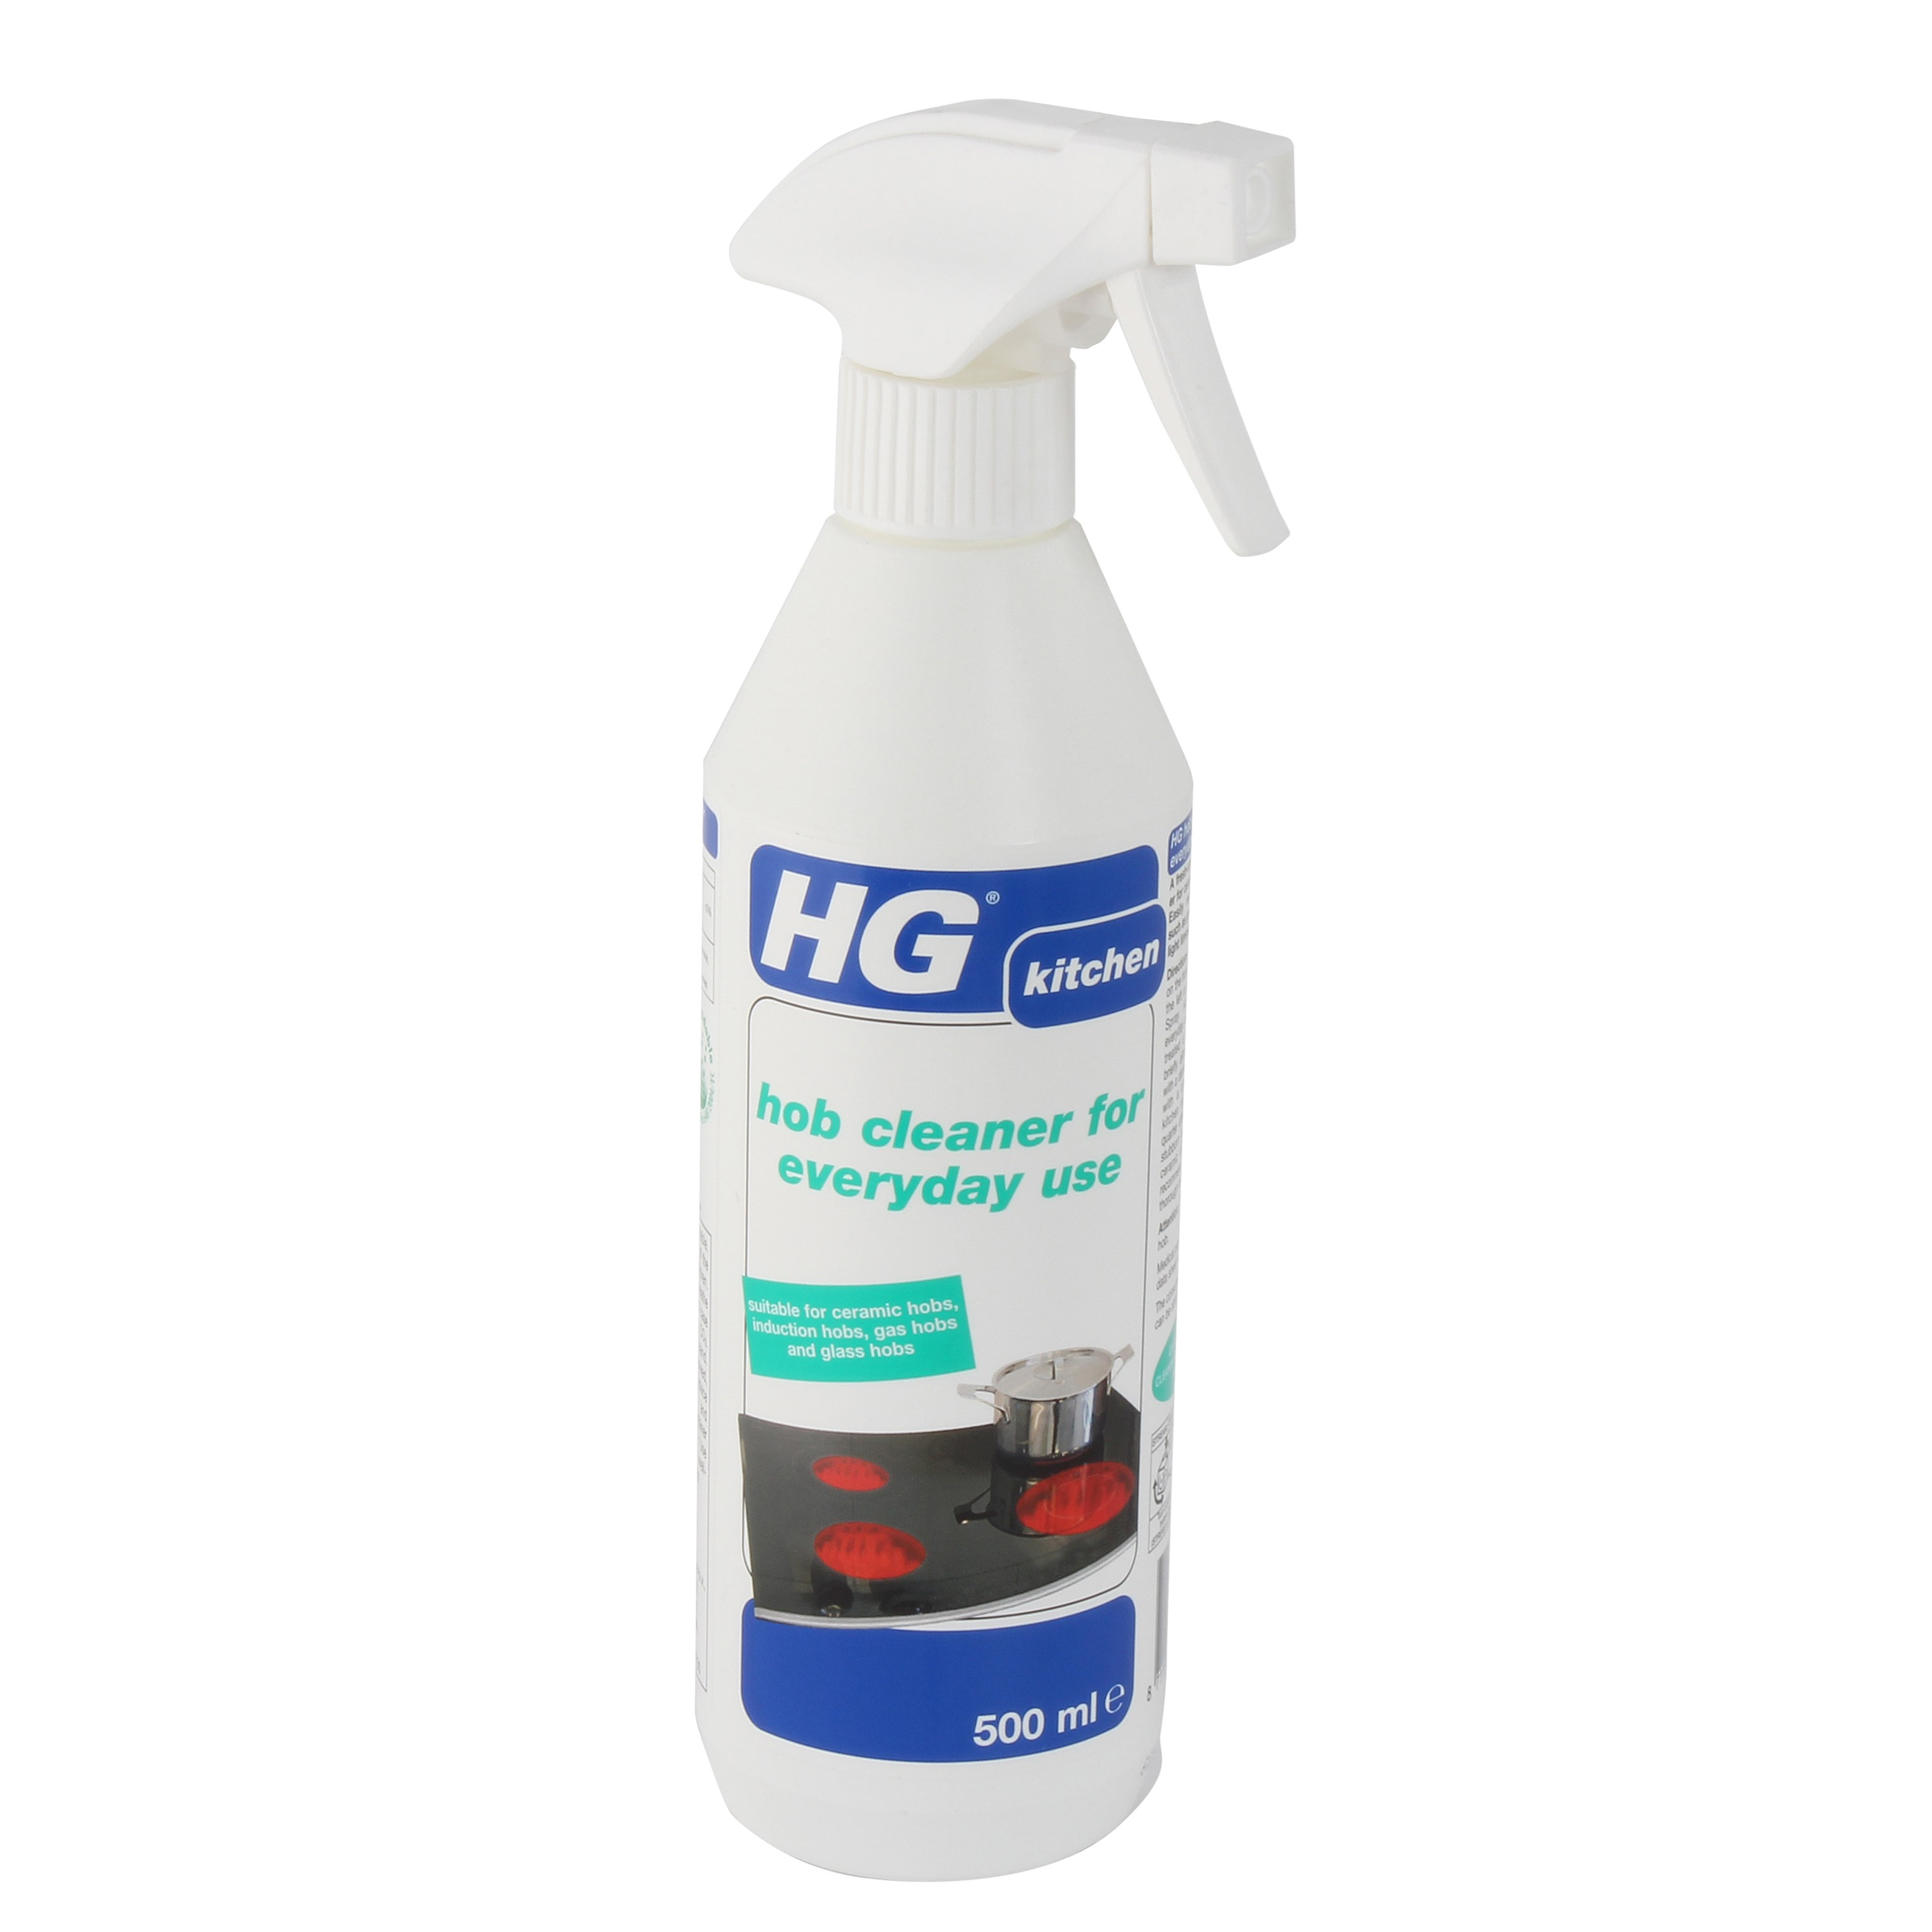 hg hob cleaner for everyday use 500ml home cleaning. Black Bedroom Furniture Sets. Home Design Ideas